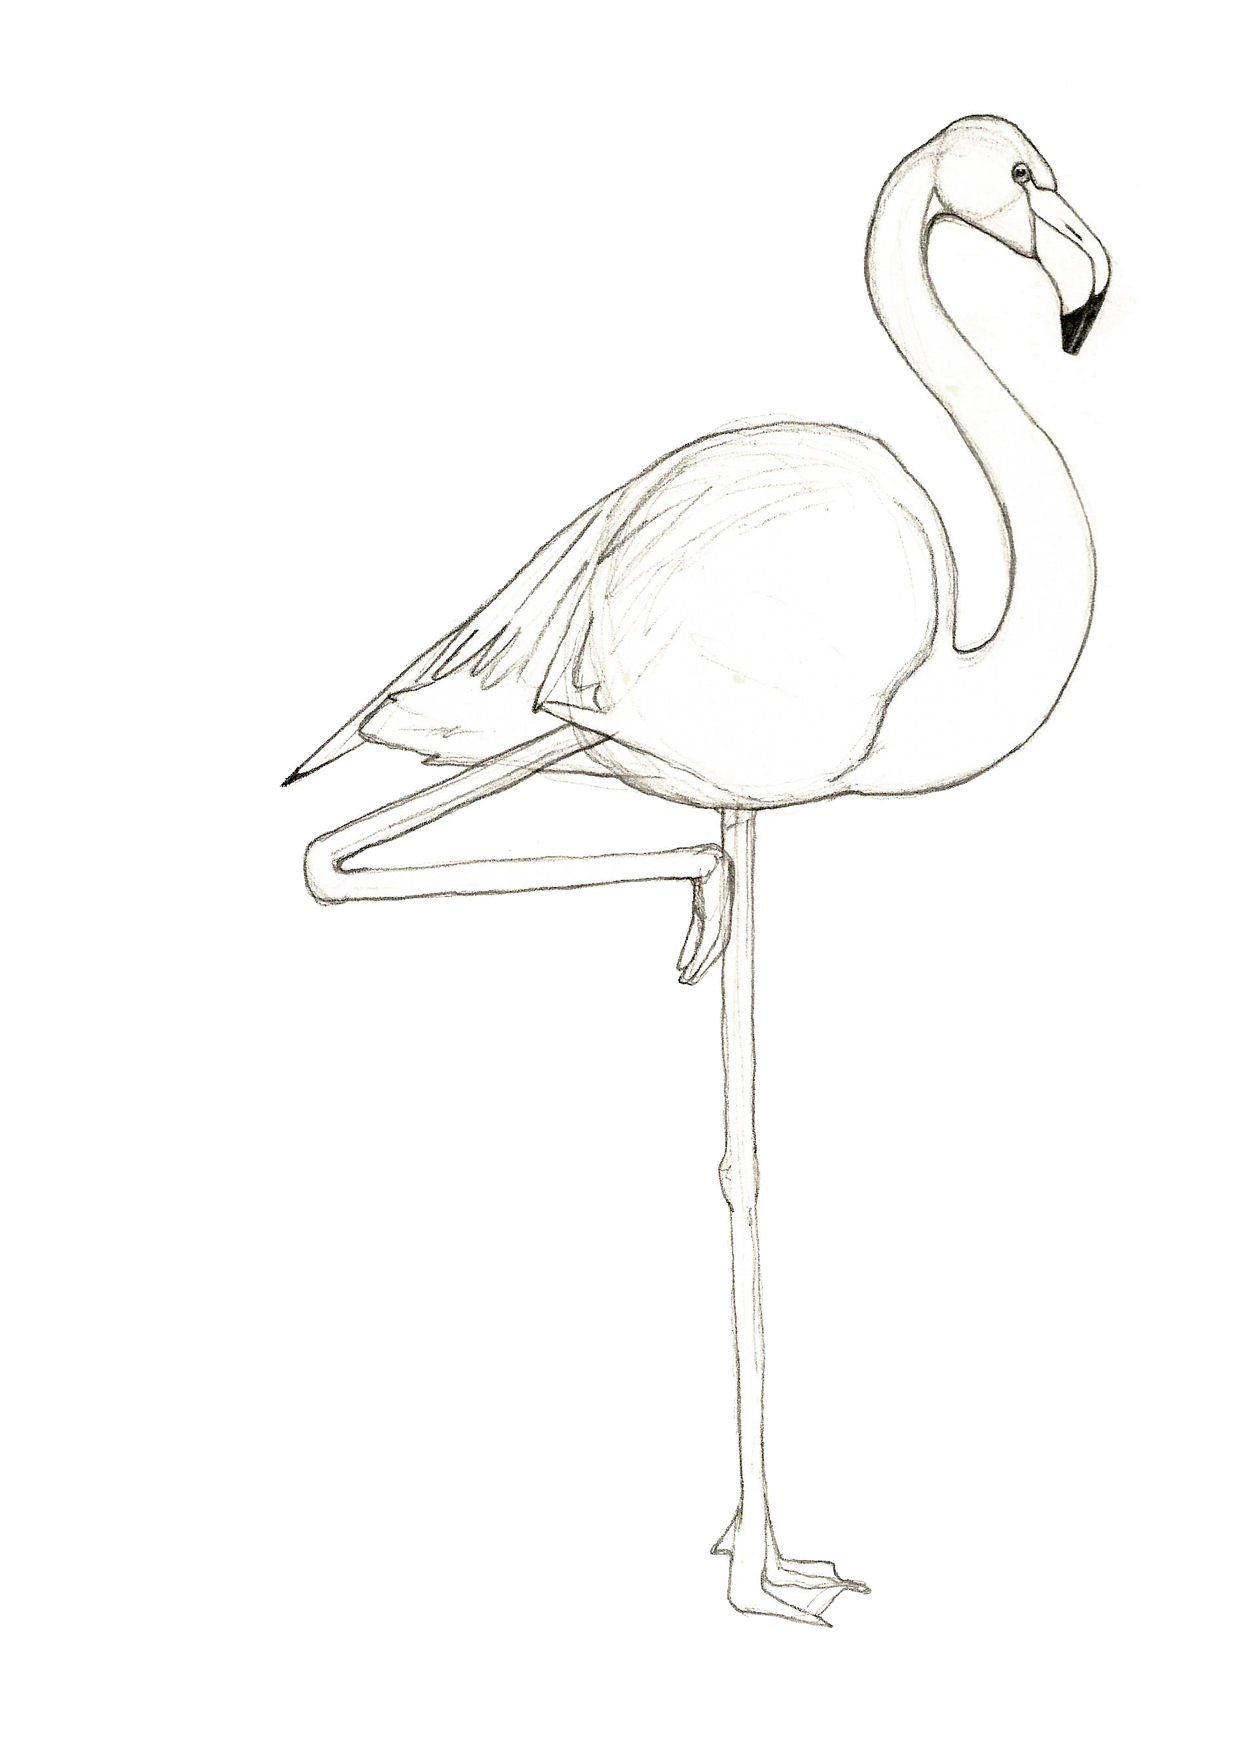 then also drew a flamingo, and then another that I coloured.